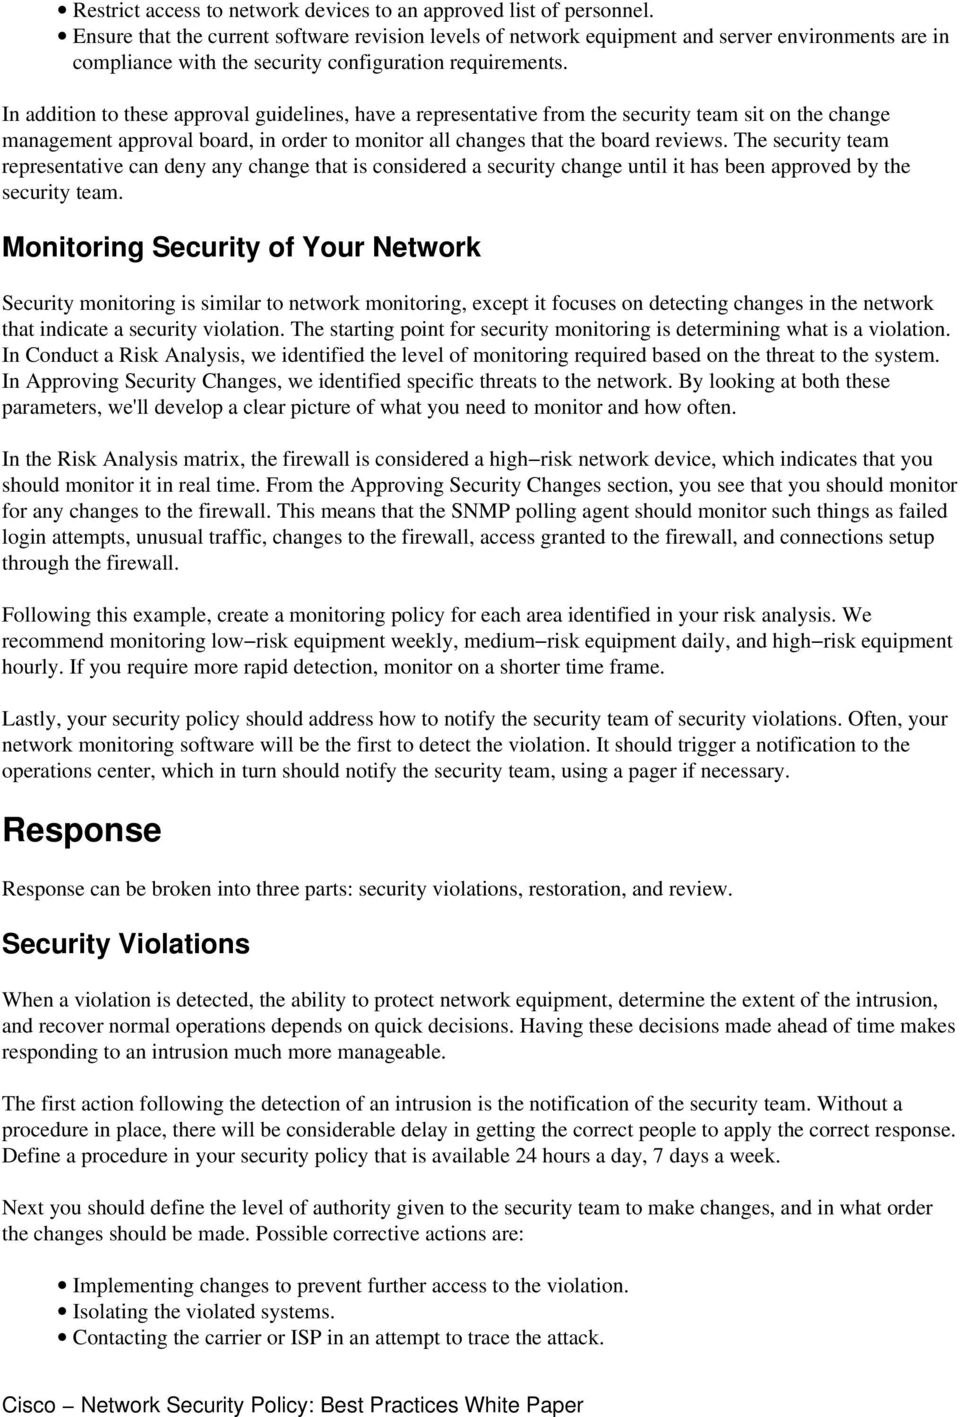 Network Security Policy: Best Practices White Paper - PDF